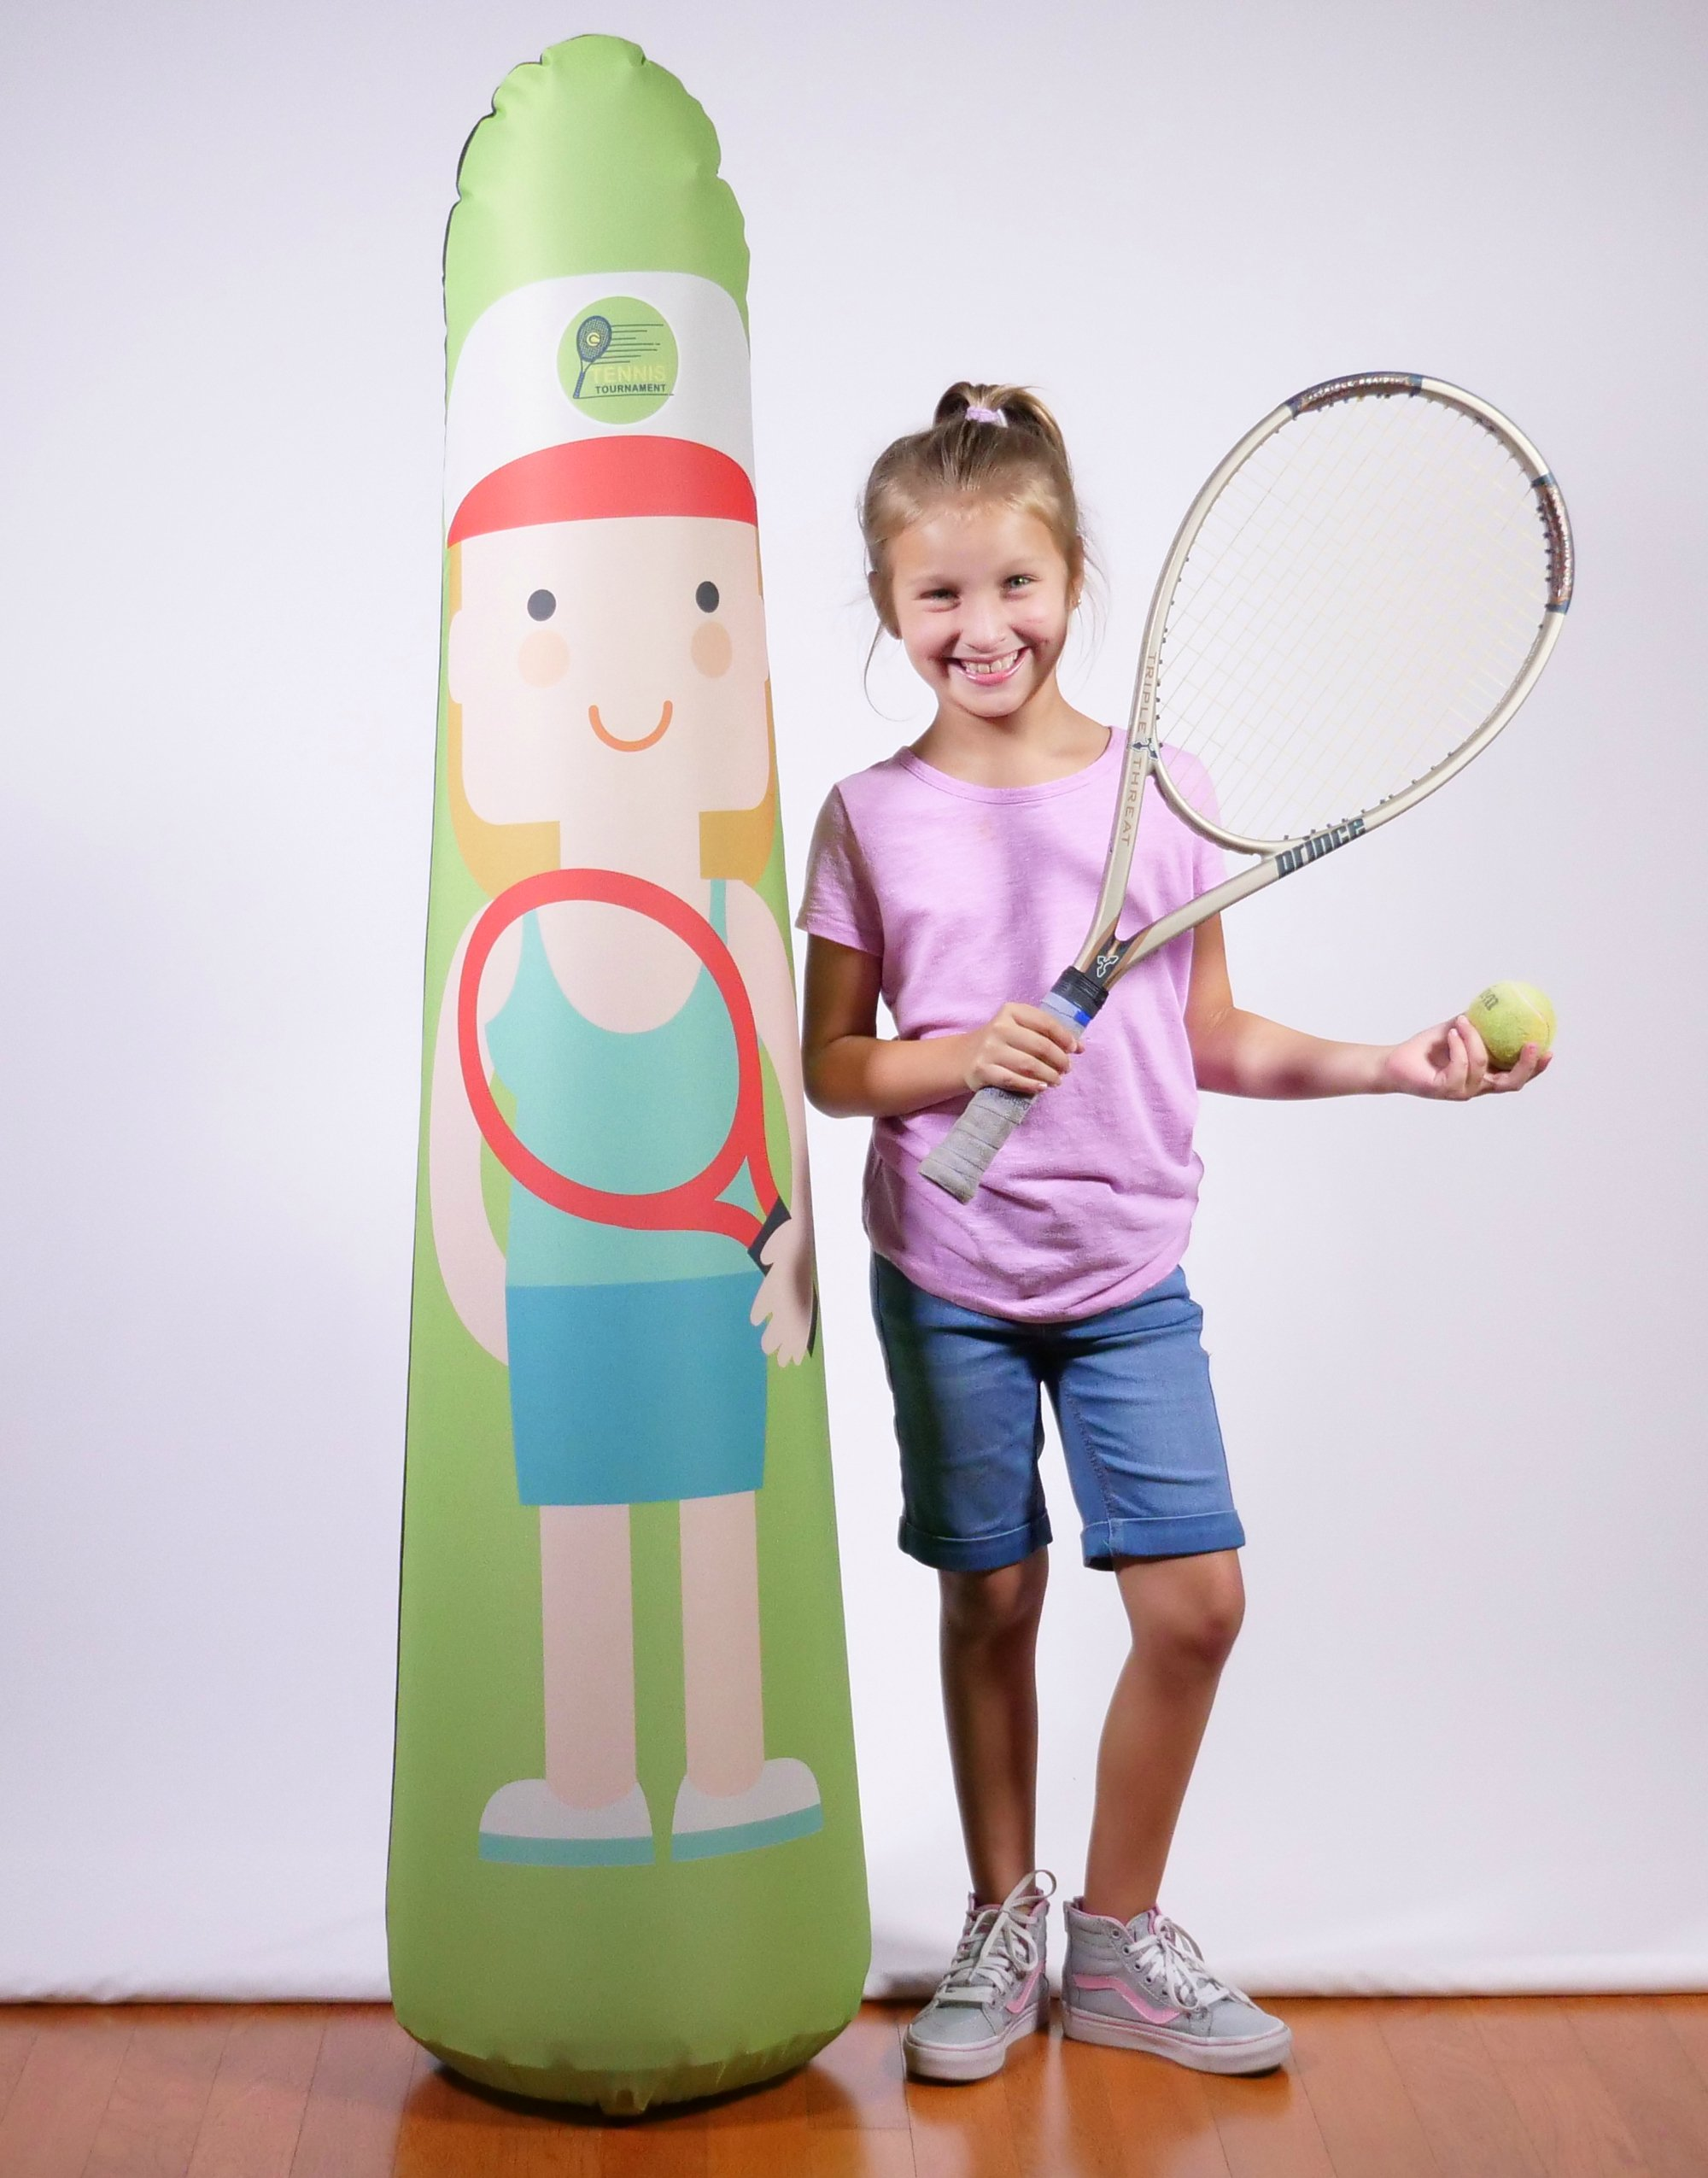 BONK FIT High Performance Polyurethane Inflatable Target, PVC-Free Pop Up Training Mannequin with One Year Warranty and Machine Washable Cover - Tennis 5ft by BONK FIT (Image #3)